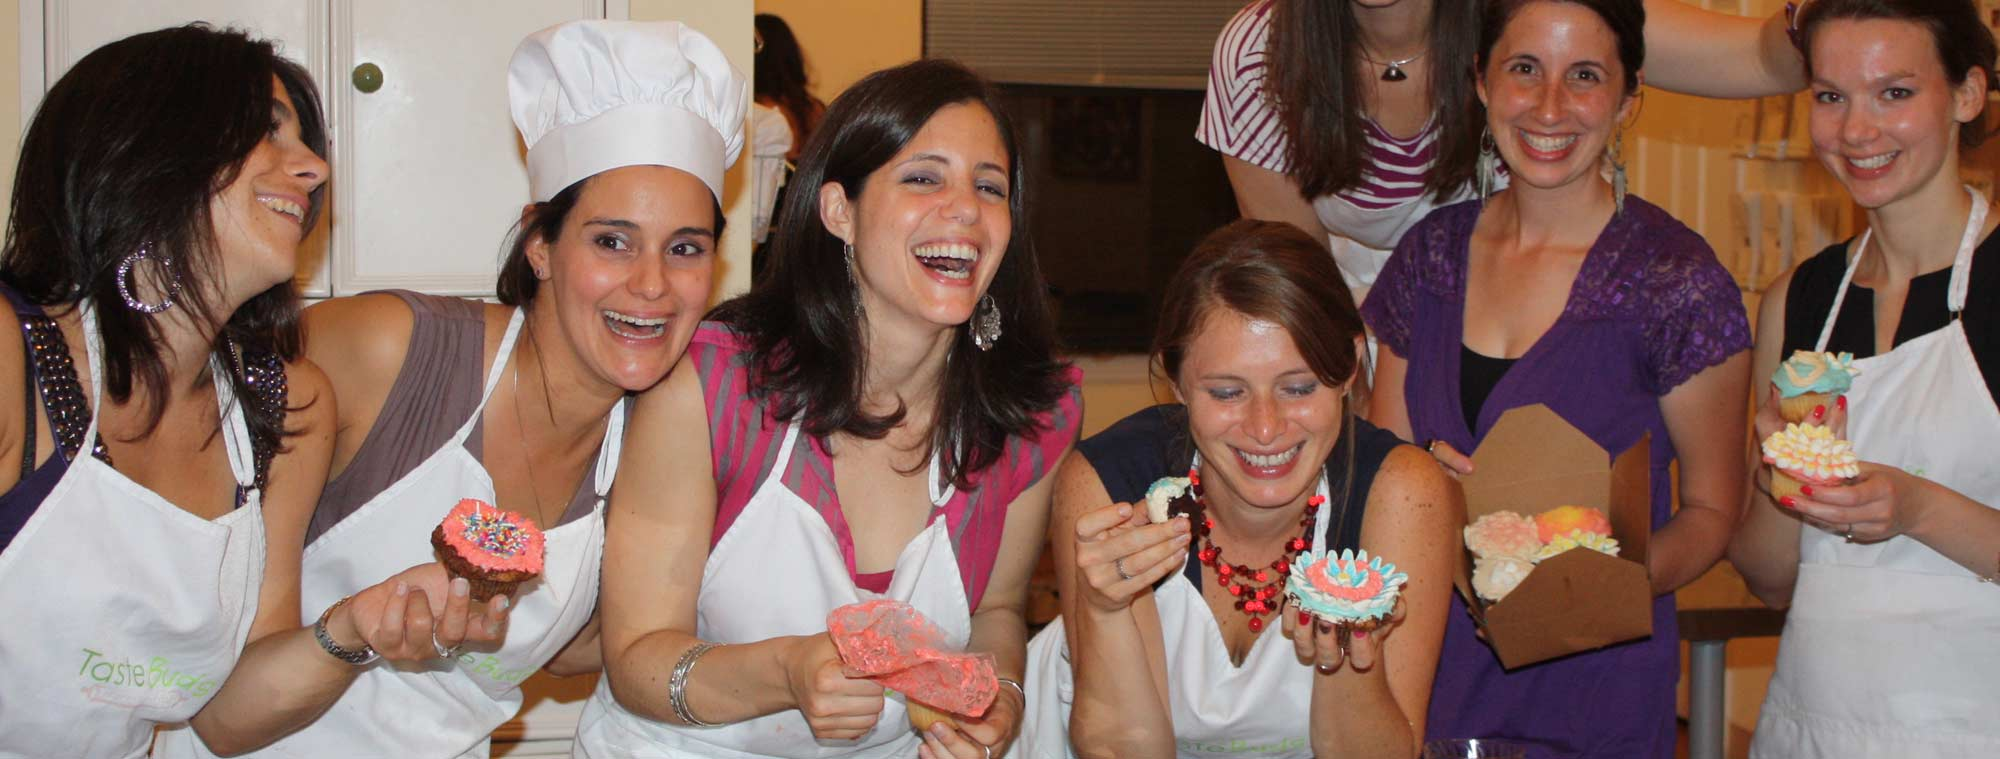 tastebudskitchen-adult-parties-header1